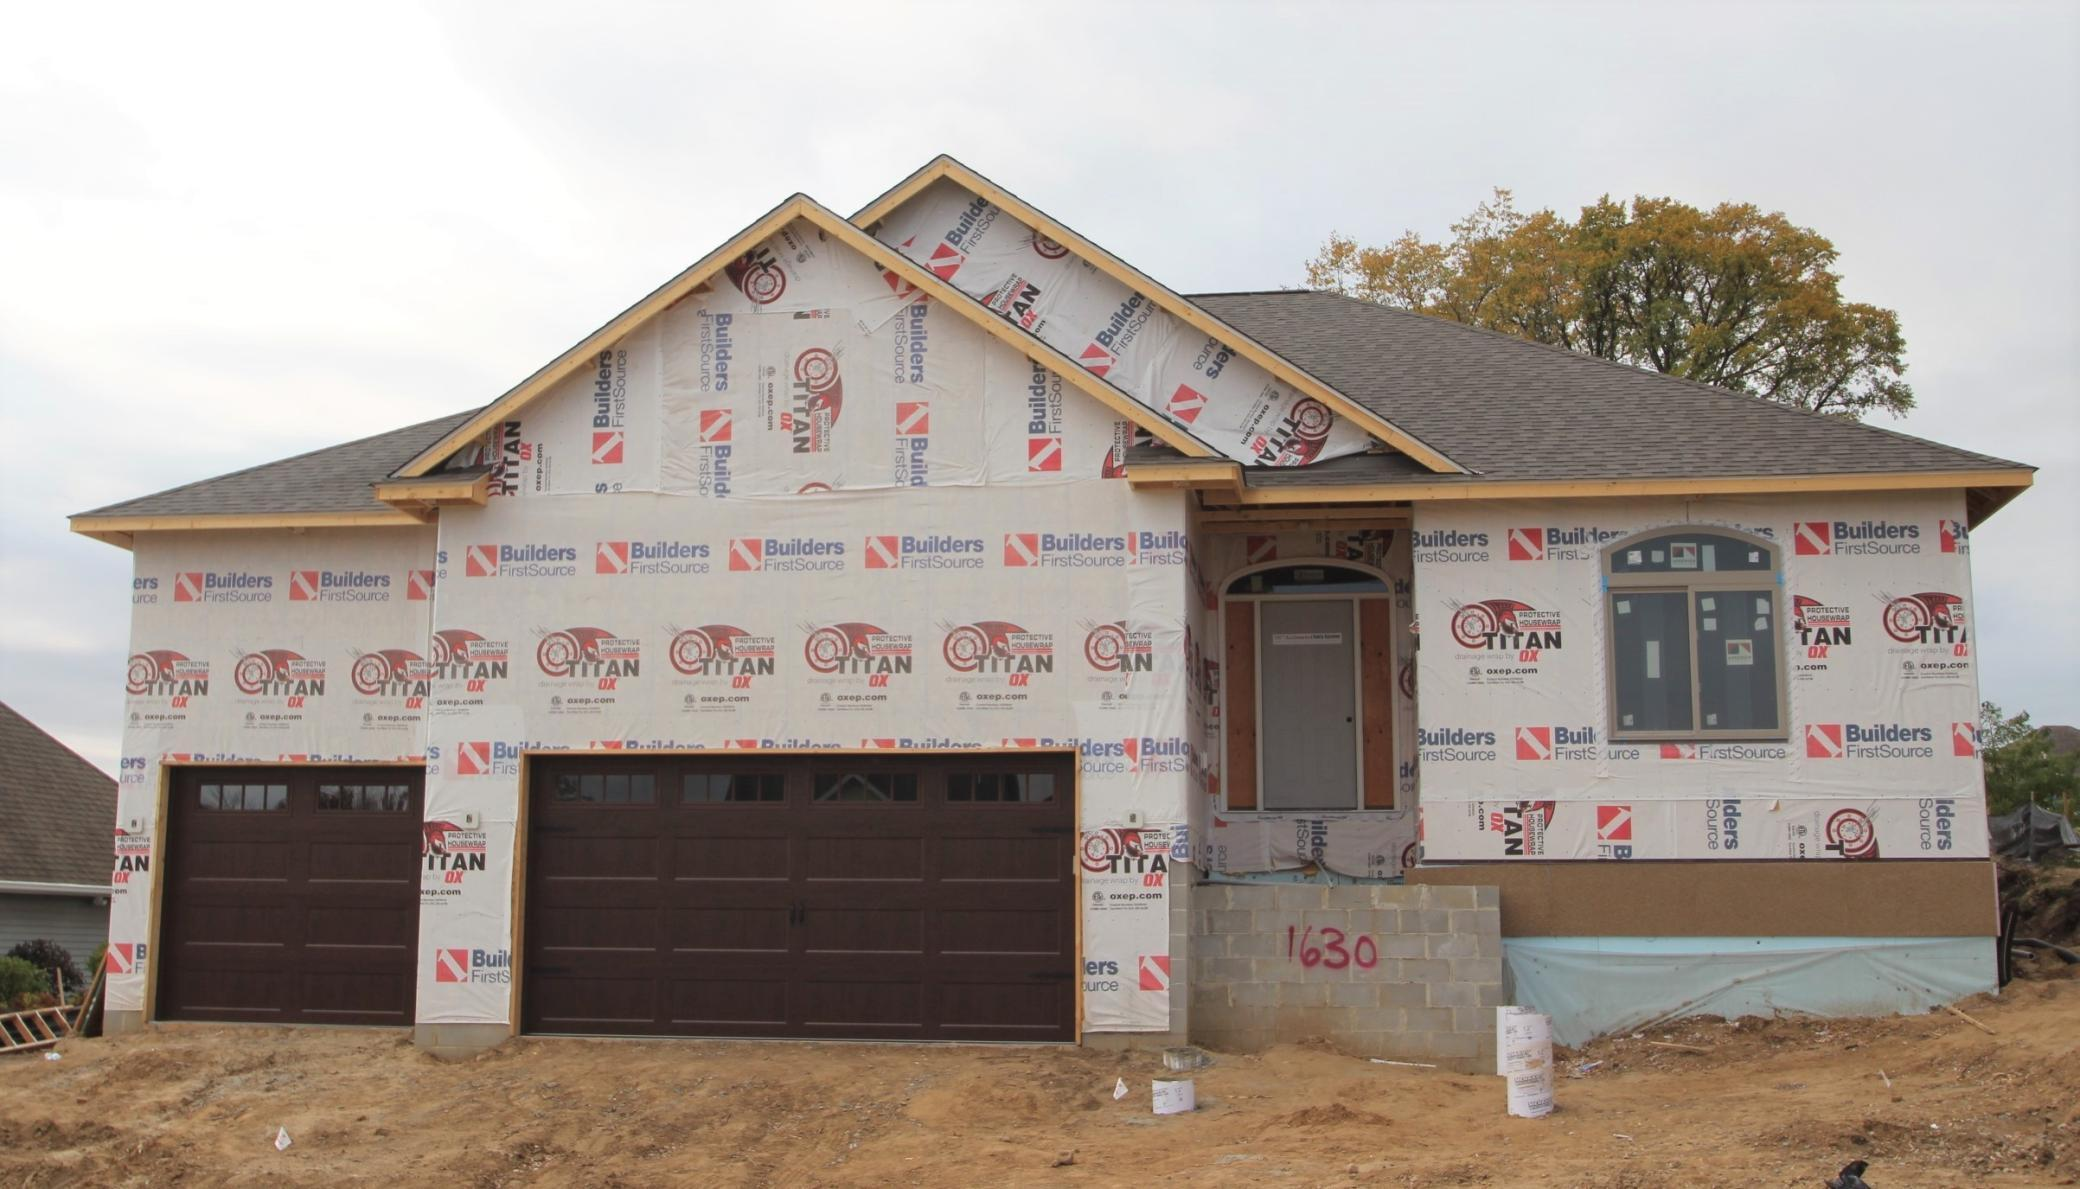 This attractive home now under construction in Southwood Heights offers sharp curb appeal and high-end amenities. THERE IS STILL TIME FOR YOU TO PICK INTERIOR SELECTIONS AND BE IN BY DECEMBER 1. The open great room features a kitchen with large center island and granite or quartz tops. The living room has a corner gas fireplace. The master suite boasts two walk-in closets and a beautiful private bath with heated floor, separate vanities with makeup counter, tile walk-in-shower and a separate water closet. There is a den or second bedroom at the front of the home with two closets as well. The main floor laundry has cabinets with a sink. Downstairs are two additional bedrooms and an enormous family room. The basement offers rough ins for future theater, wet bar and sauna. The home will offer Cat 5 wiring, and an intercom and sound system. The garage is insulated and roughed in for heat. The exterior is LP Smart Siding with cultured stone and the yard will be finished and sprinkled.